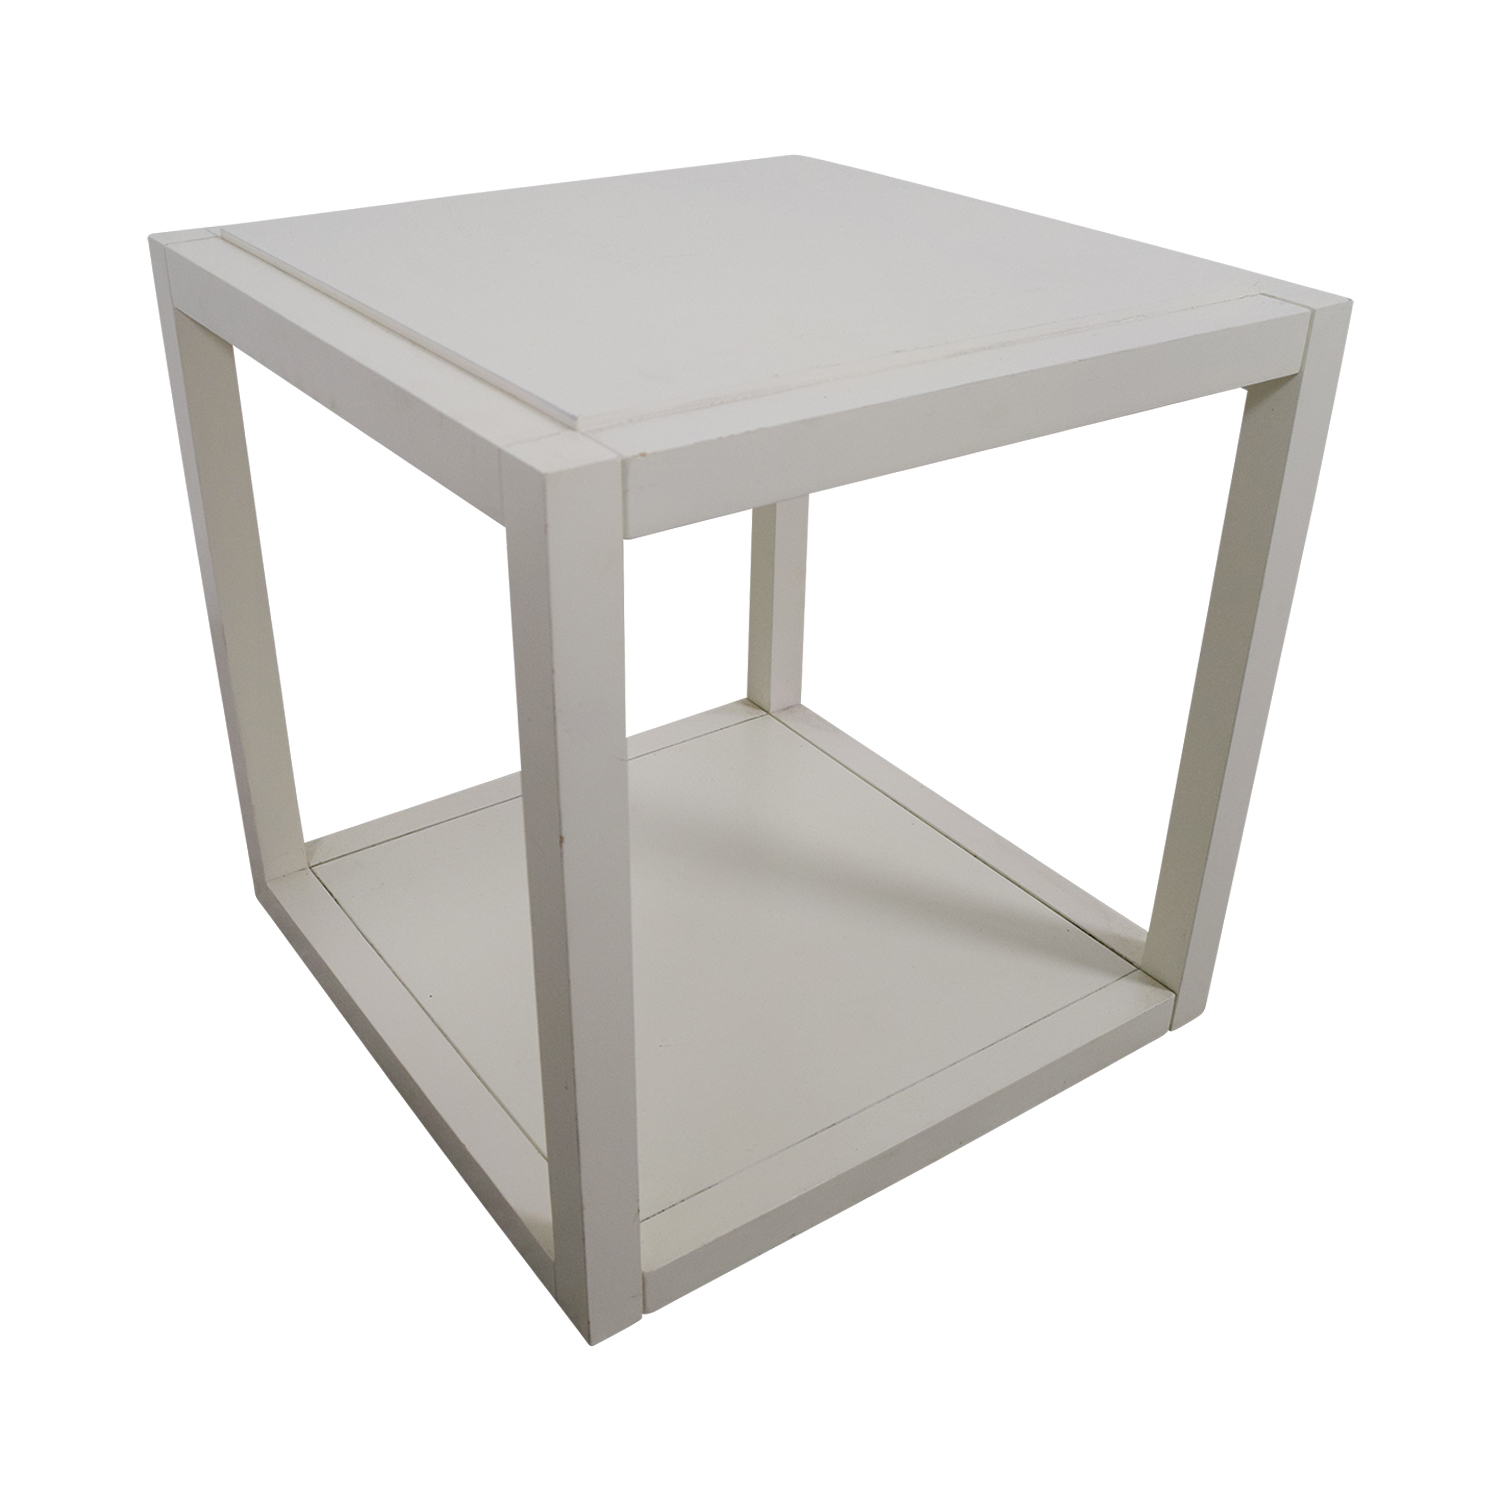 OFF CB CB White Low Side Table Tables - Cb2 outdoor side table